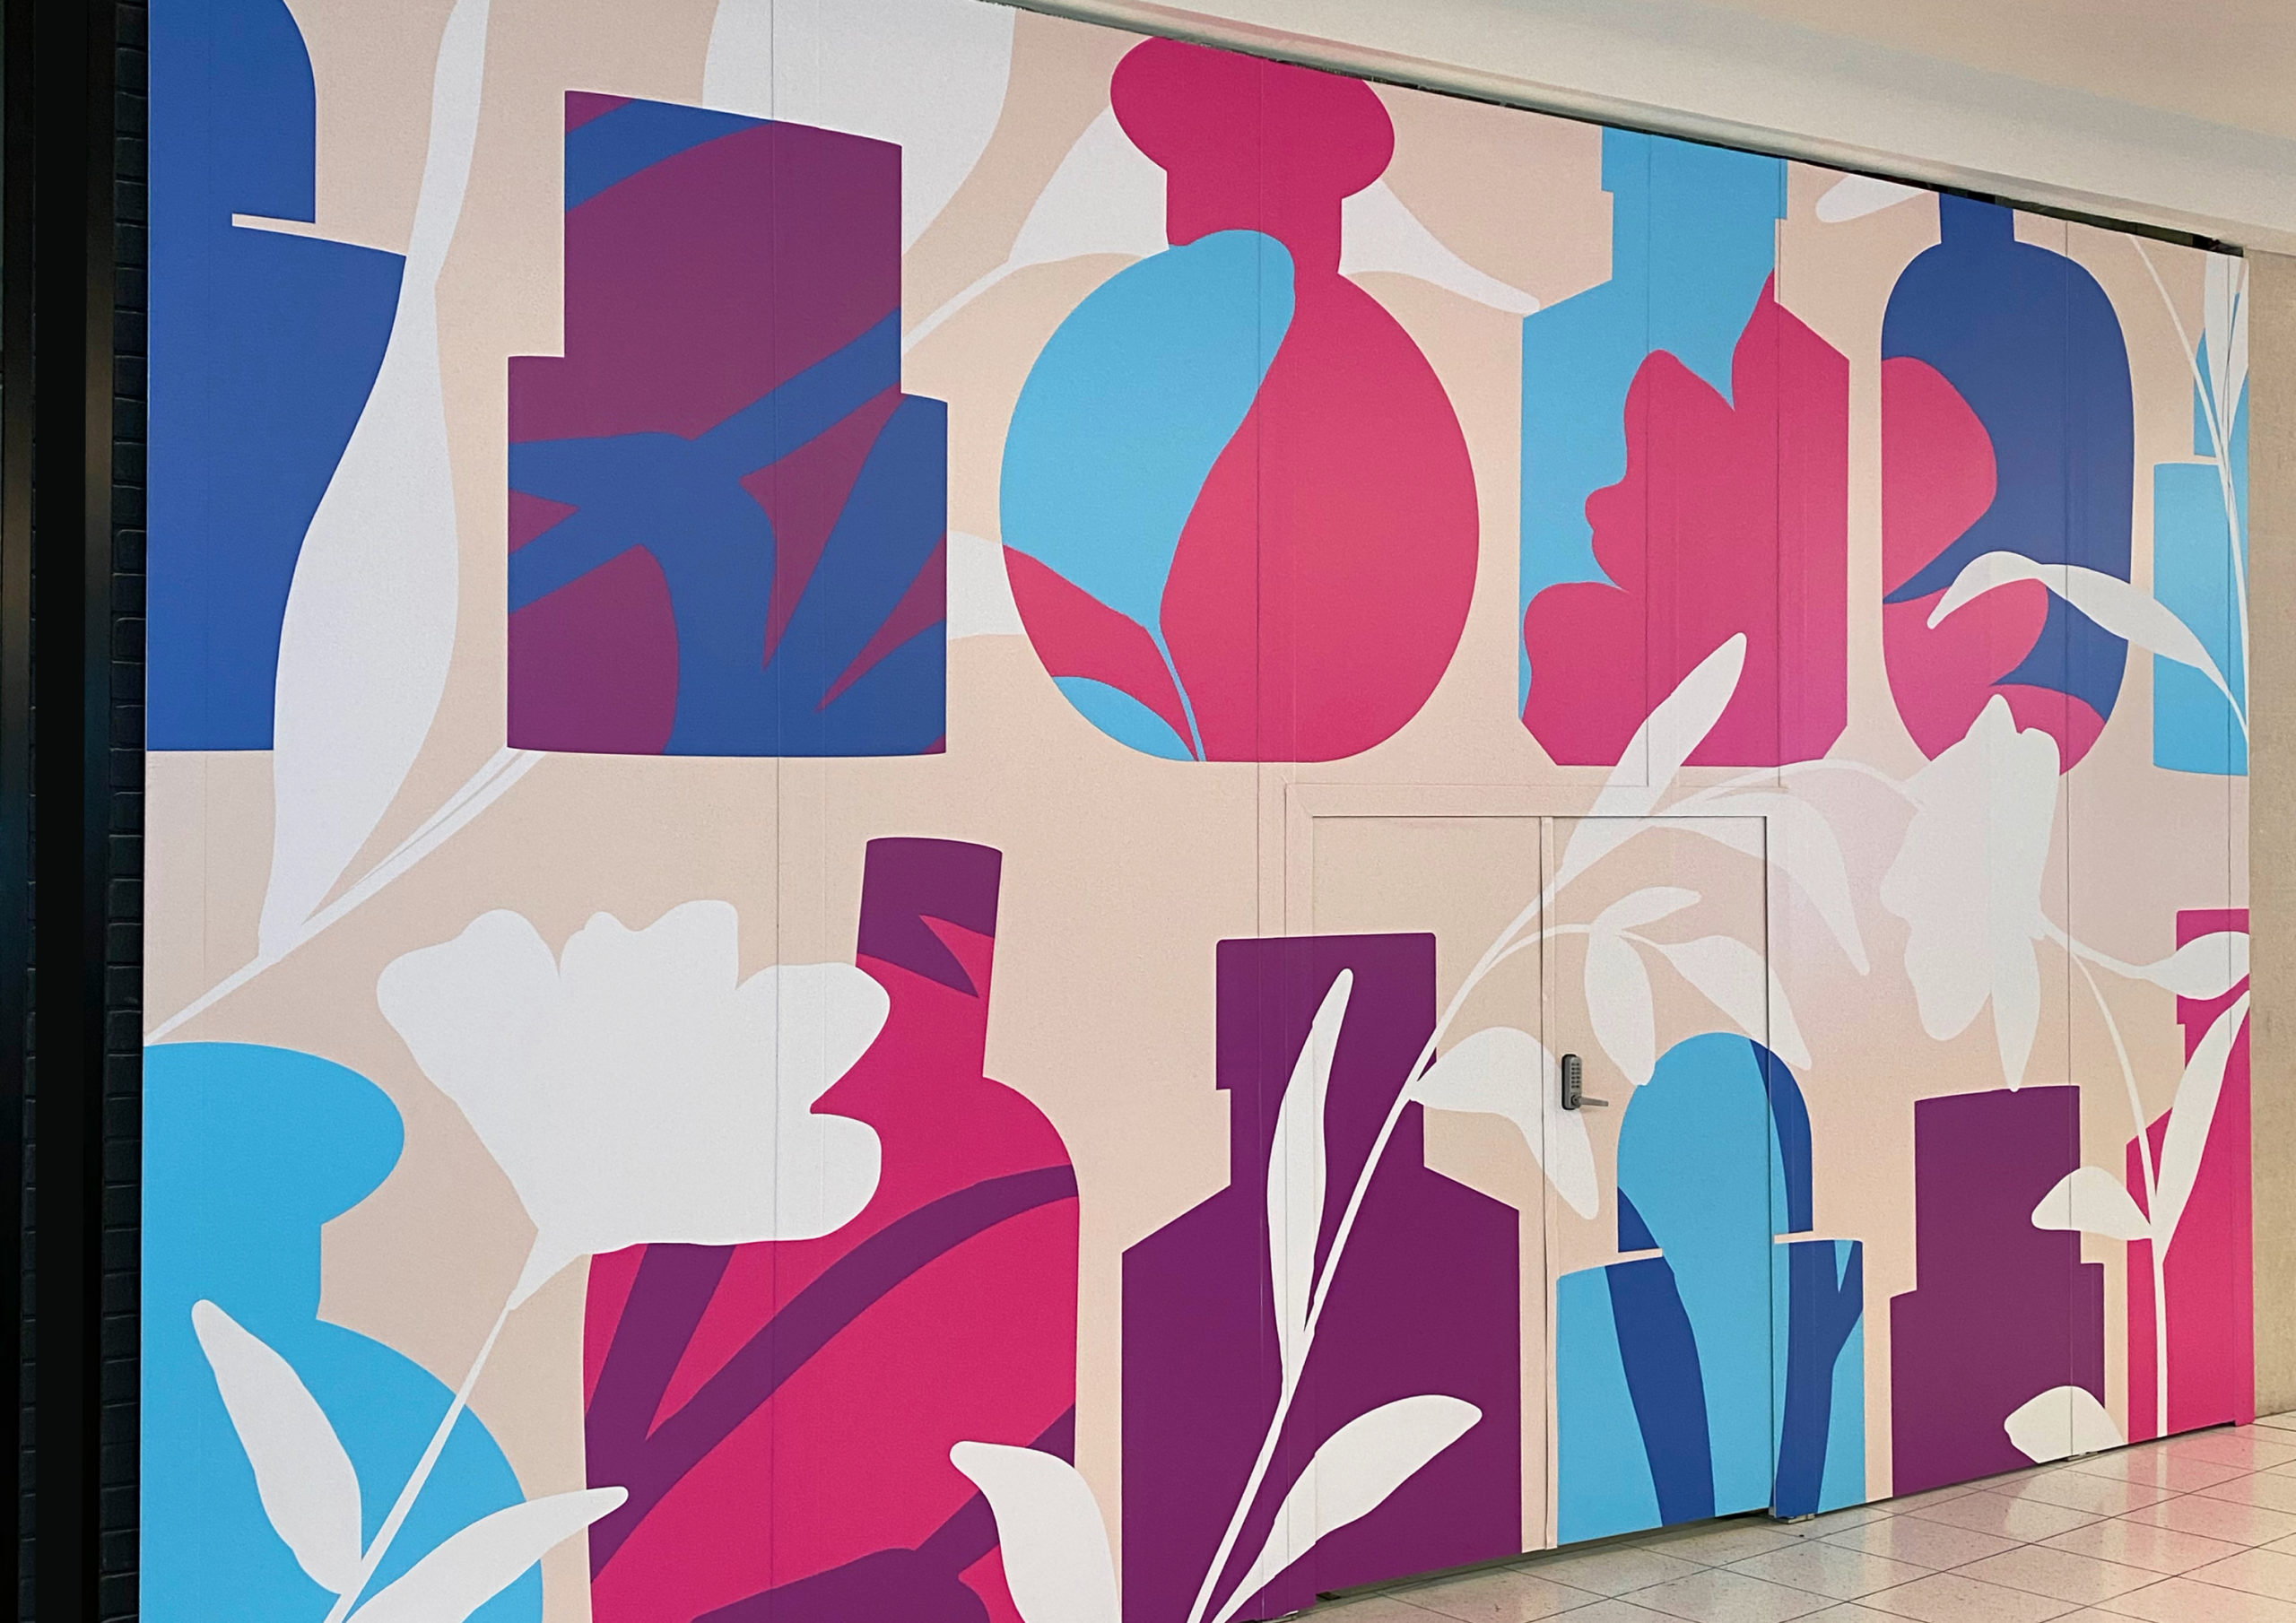 Large scale retail graphics at Sylvia Park Level 1 Launch featuring illustrated oversized perfume bottles overlayed with pink, purple and blue blooms